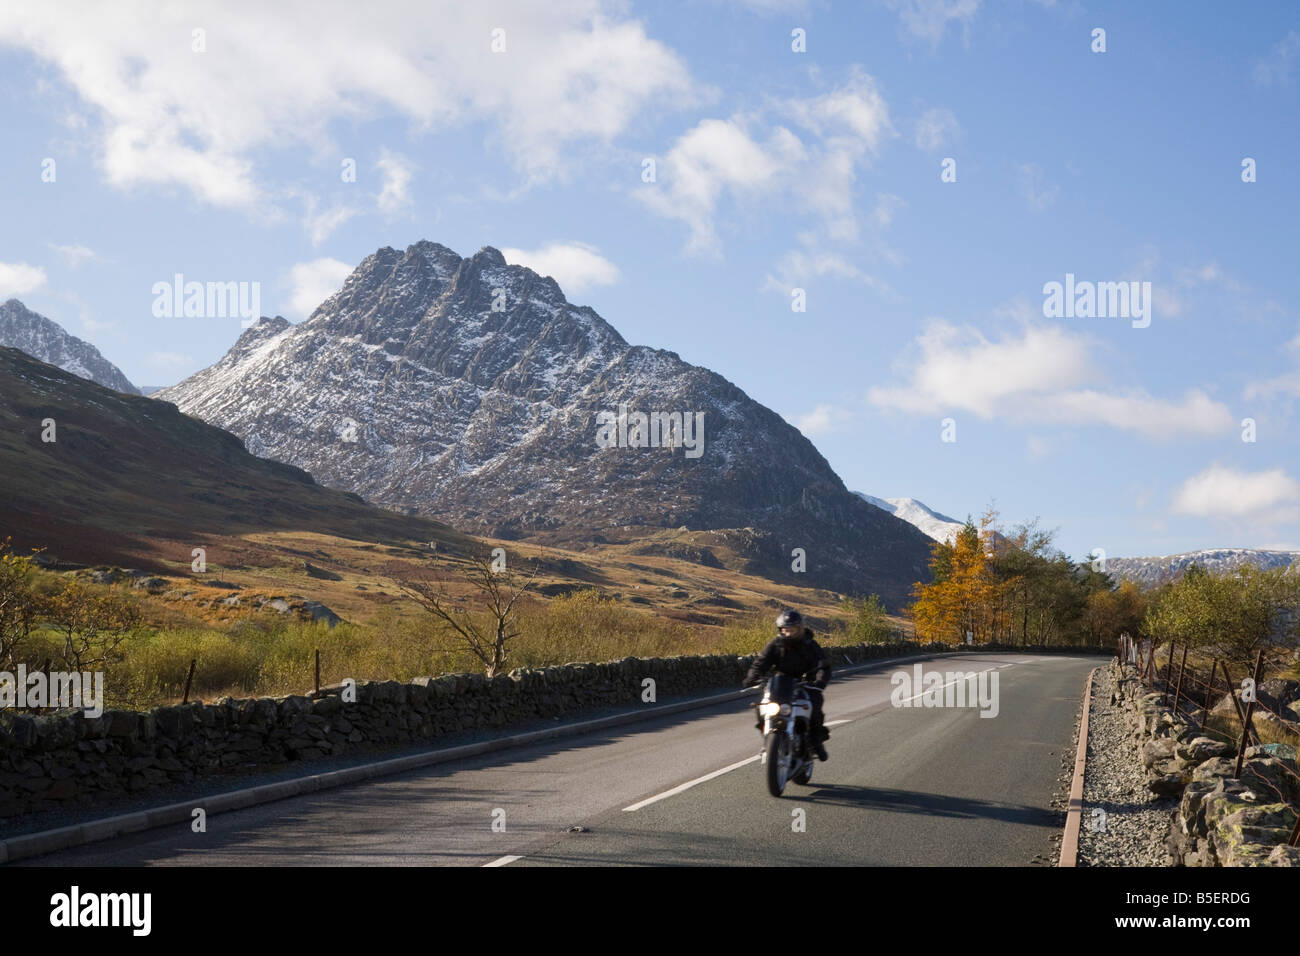 View along historic A5 road with motorbike riding through Ogwen Valley to Tryfan mountain in Snowdonia National - Stock Image